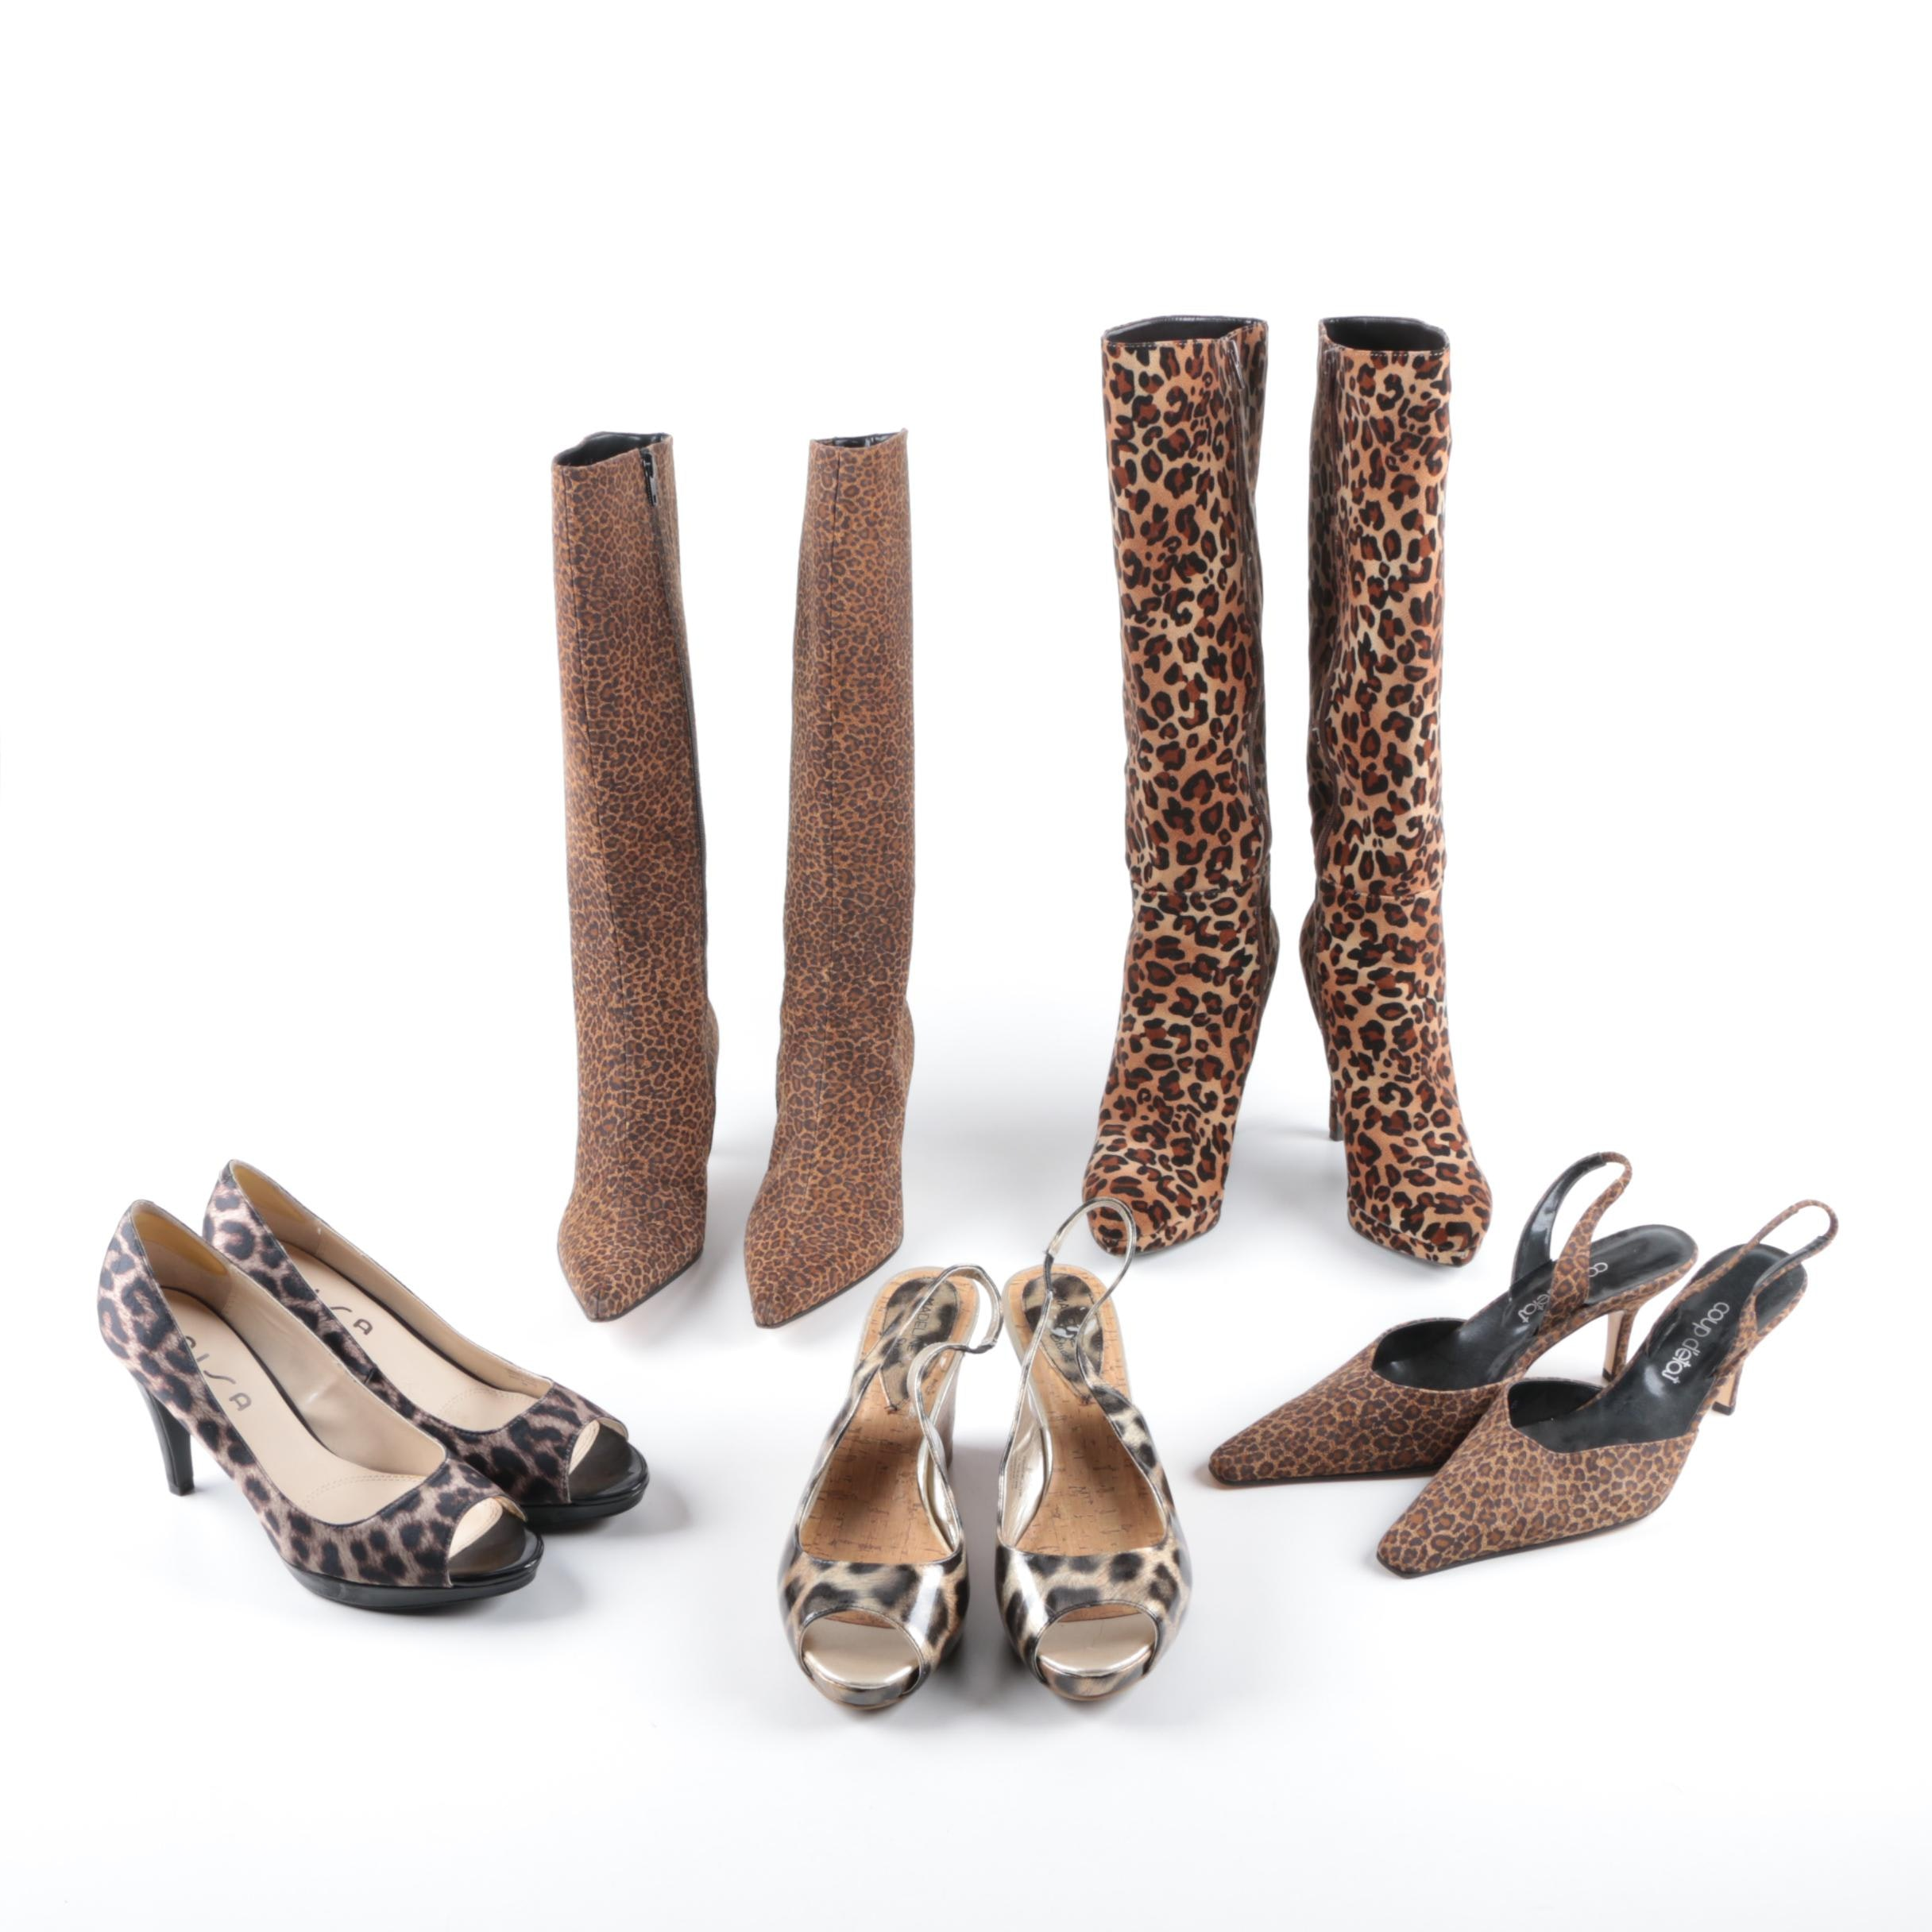 Women's Animal Print Heels, Slingbacks and Boots